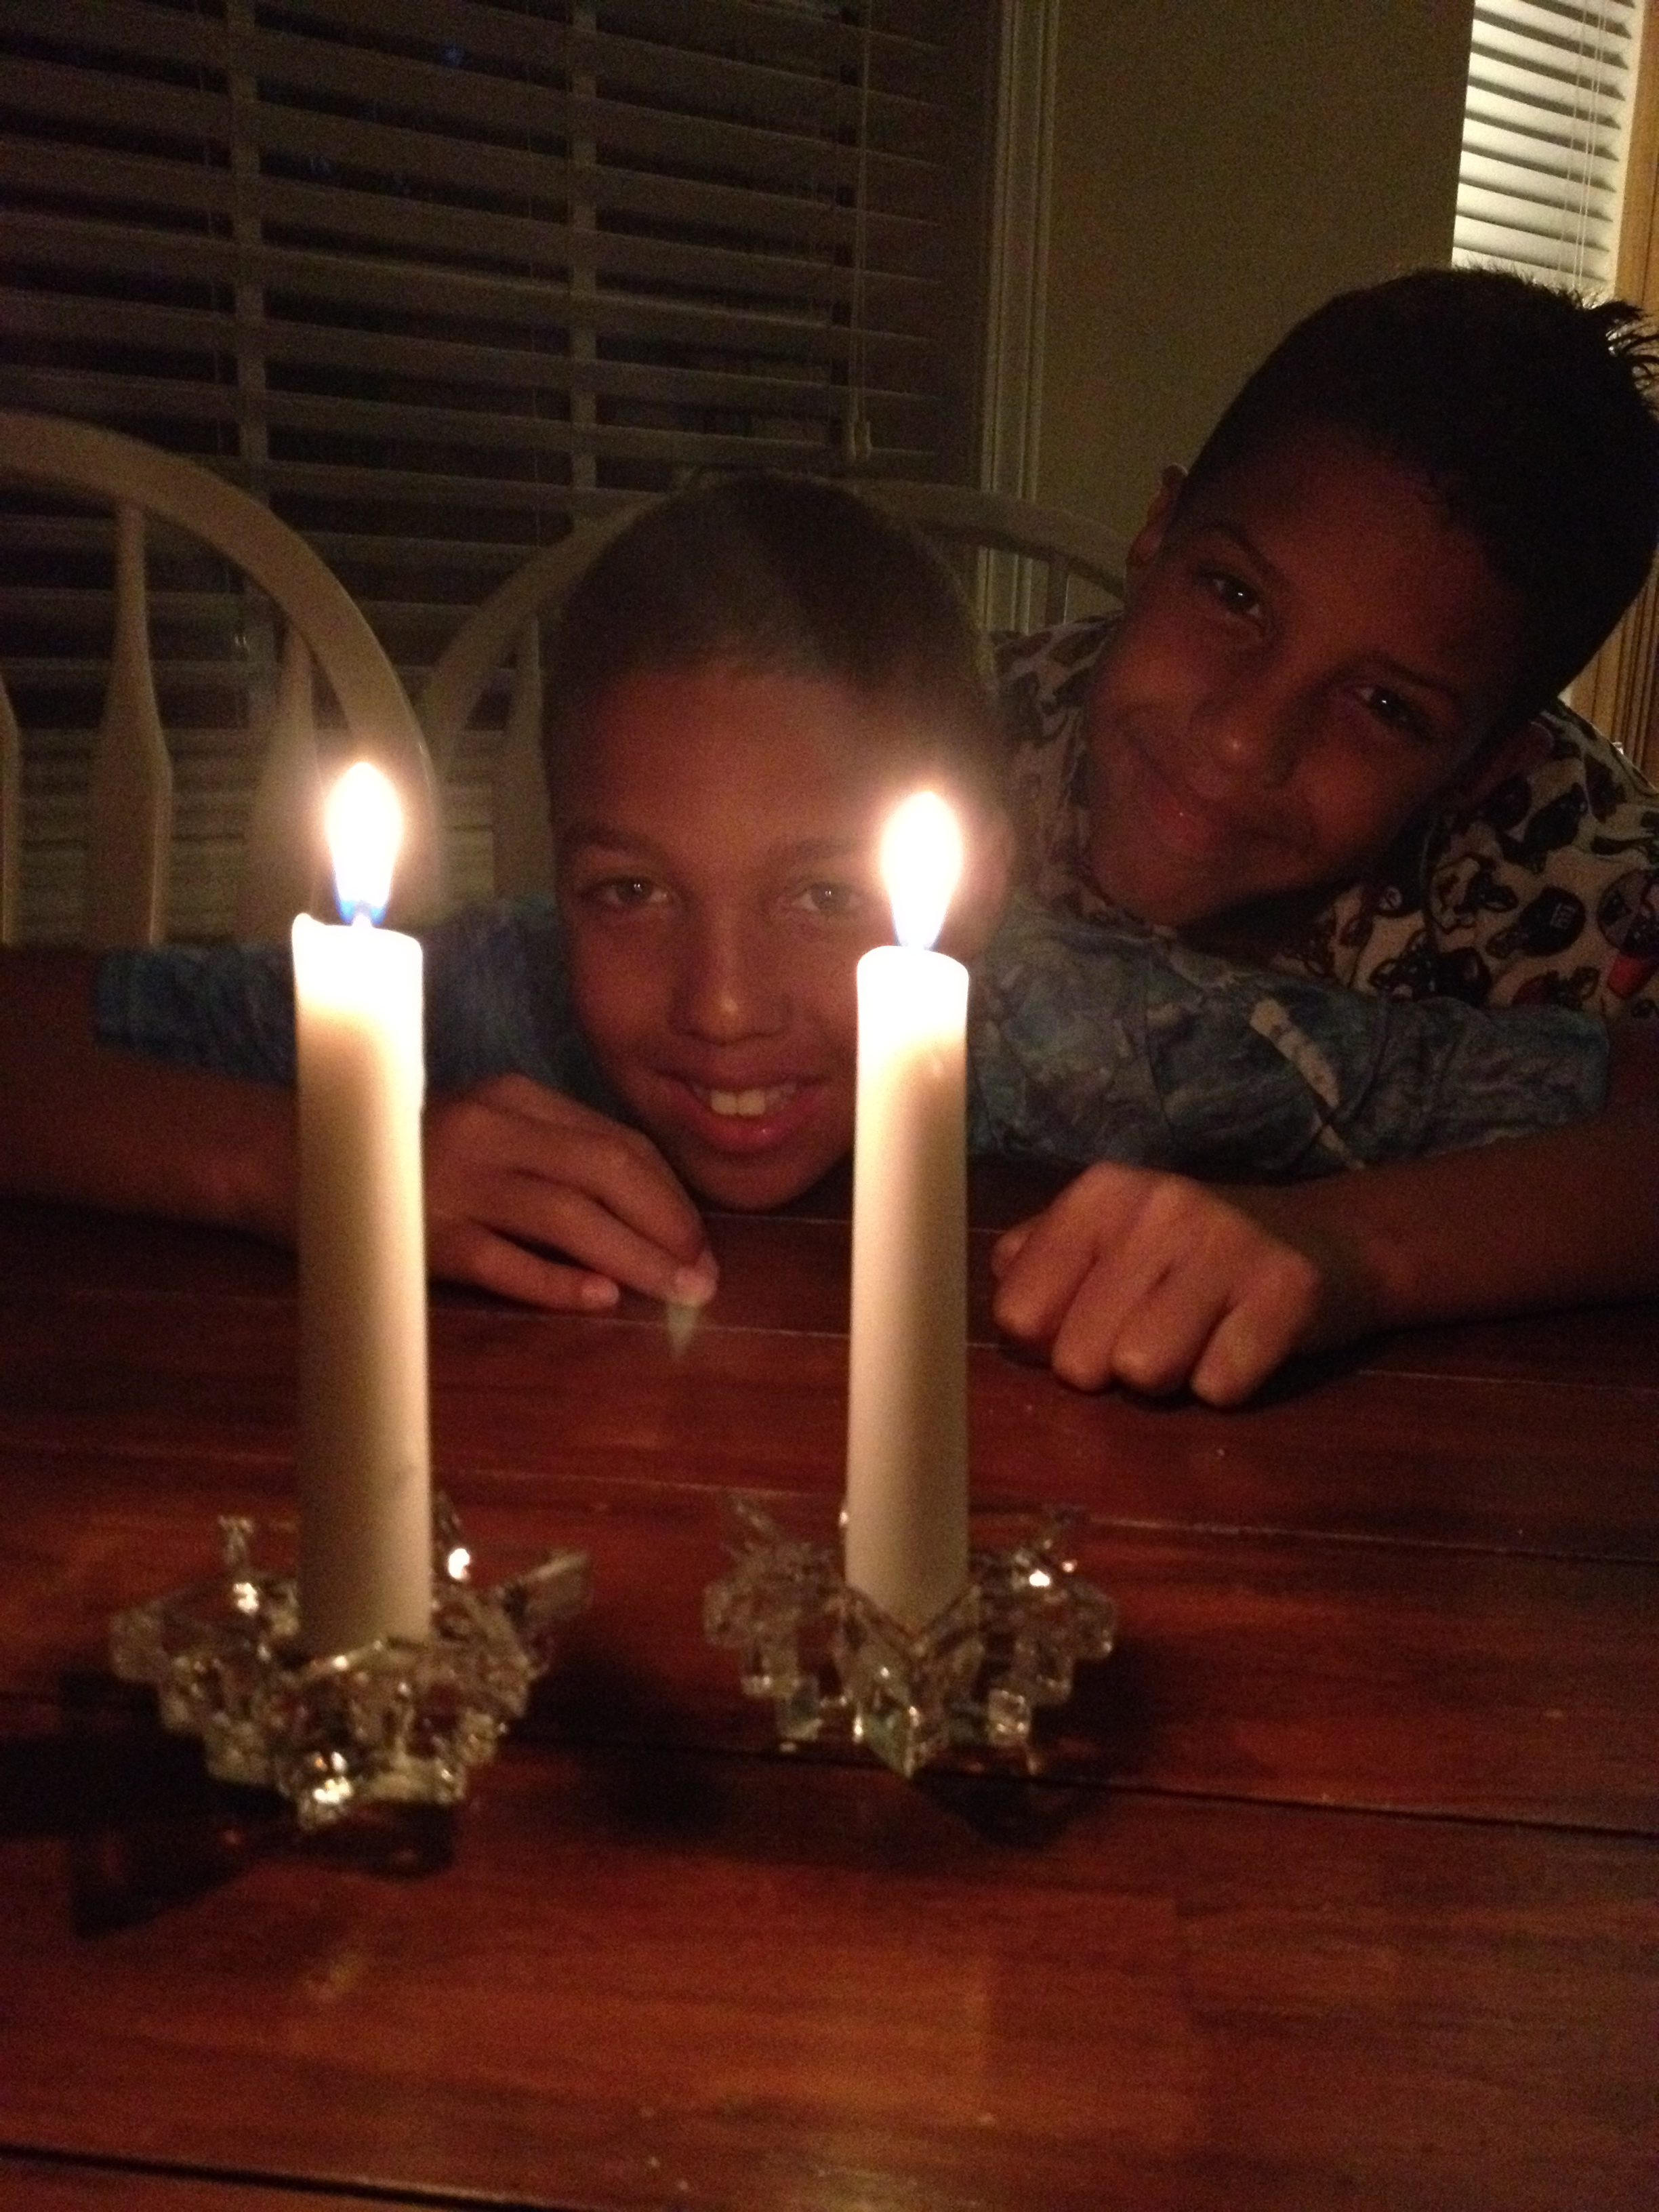 David and Daniel after lighting the candles to enter into the Sabbath.